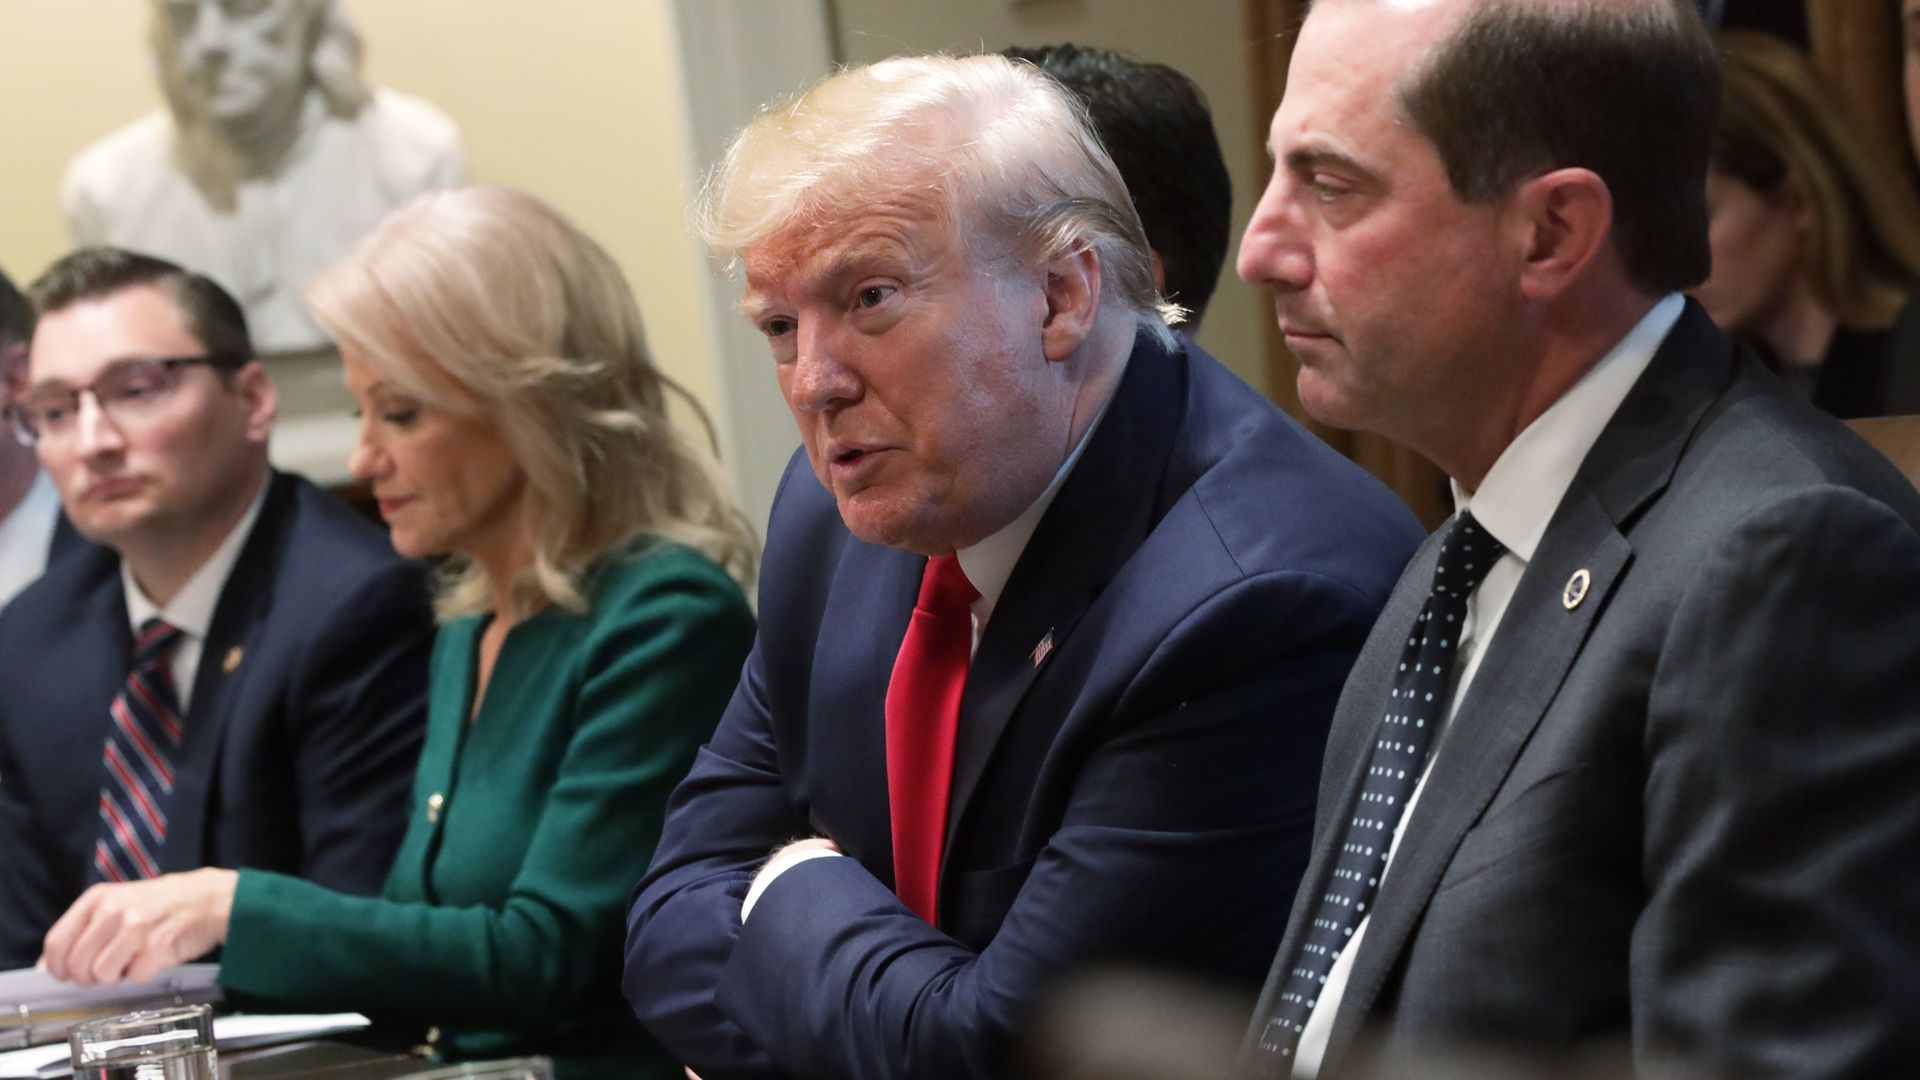 President Donald Trump speaks during a listening session on youth vaping of electronic cigarette on November 22, 2019 in the Cabinet Room